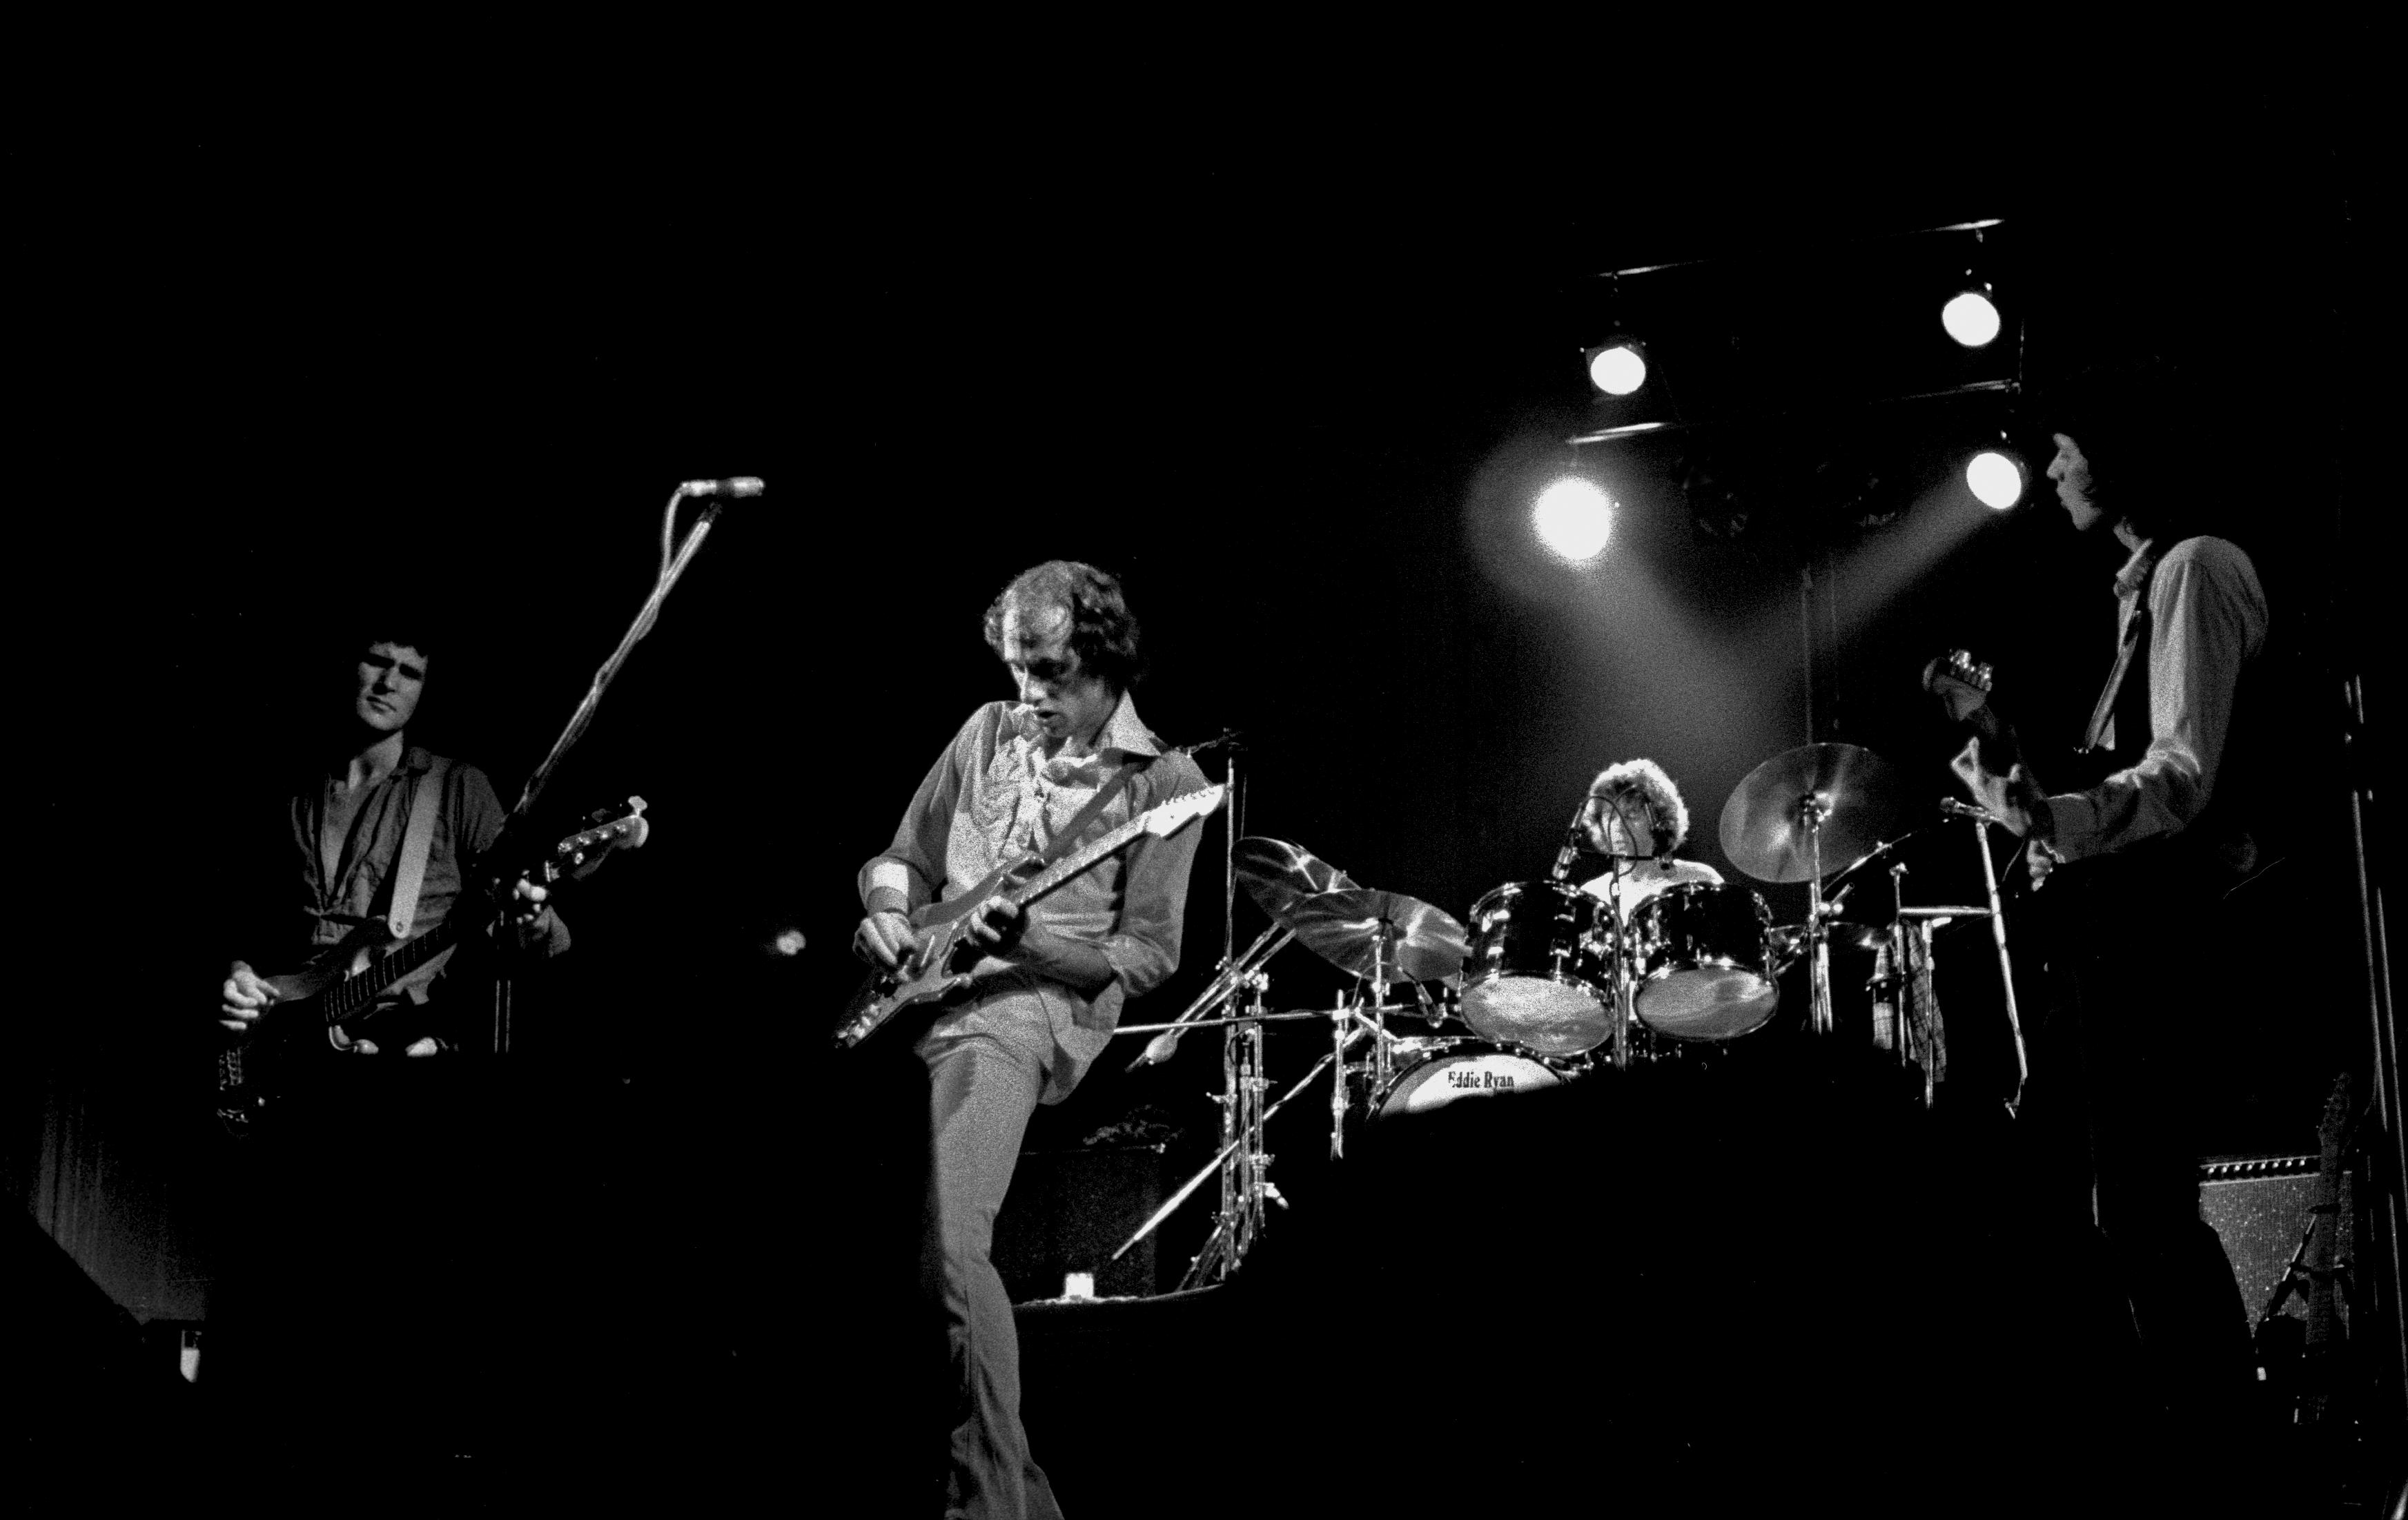 Dire Straits, 28 October 1978, Musikhalle Hamburg. Photo: Heinrich Klaffs